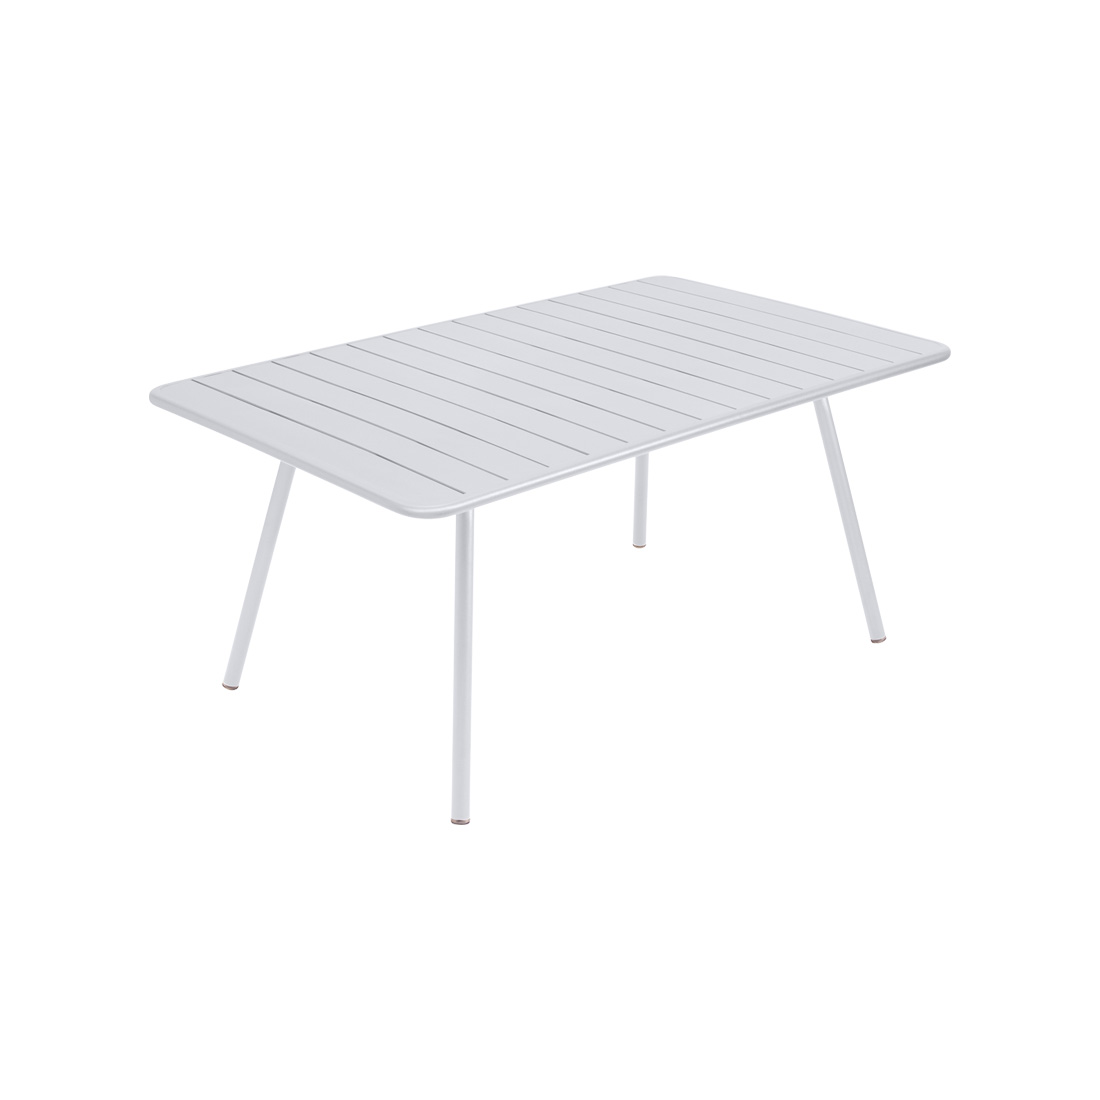 Luxembourg Table 165cm Cotton White